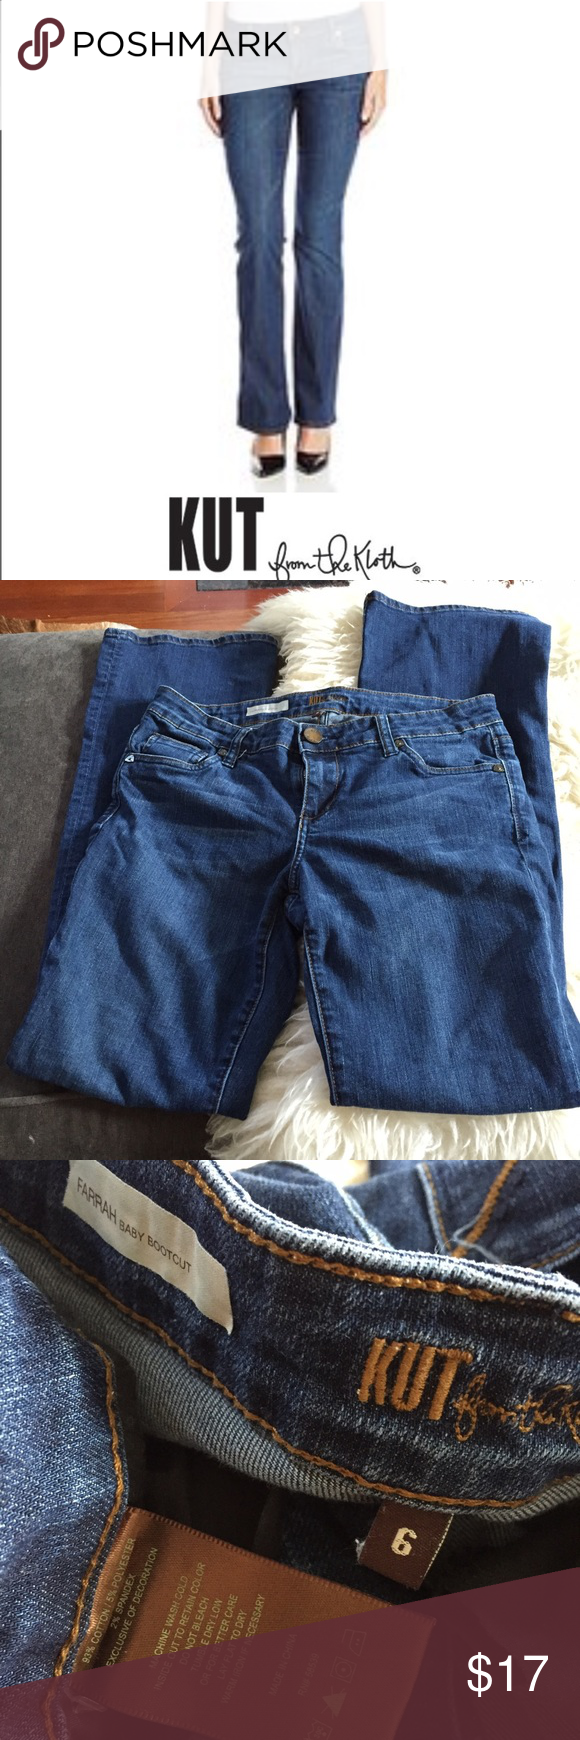 Kut From the Kloth Farrah Baby Bootcut Jeans Kut From the Kloth Farrah Baby Bootcut Jeans. 32 inch inseam. 8.5 inch rise. Gently worn just a few times. Excellent condition. Feel free to make an offer. KUT Jeans Boot Cut